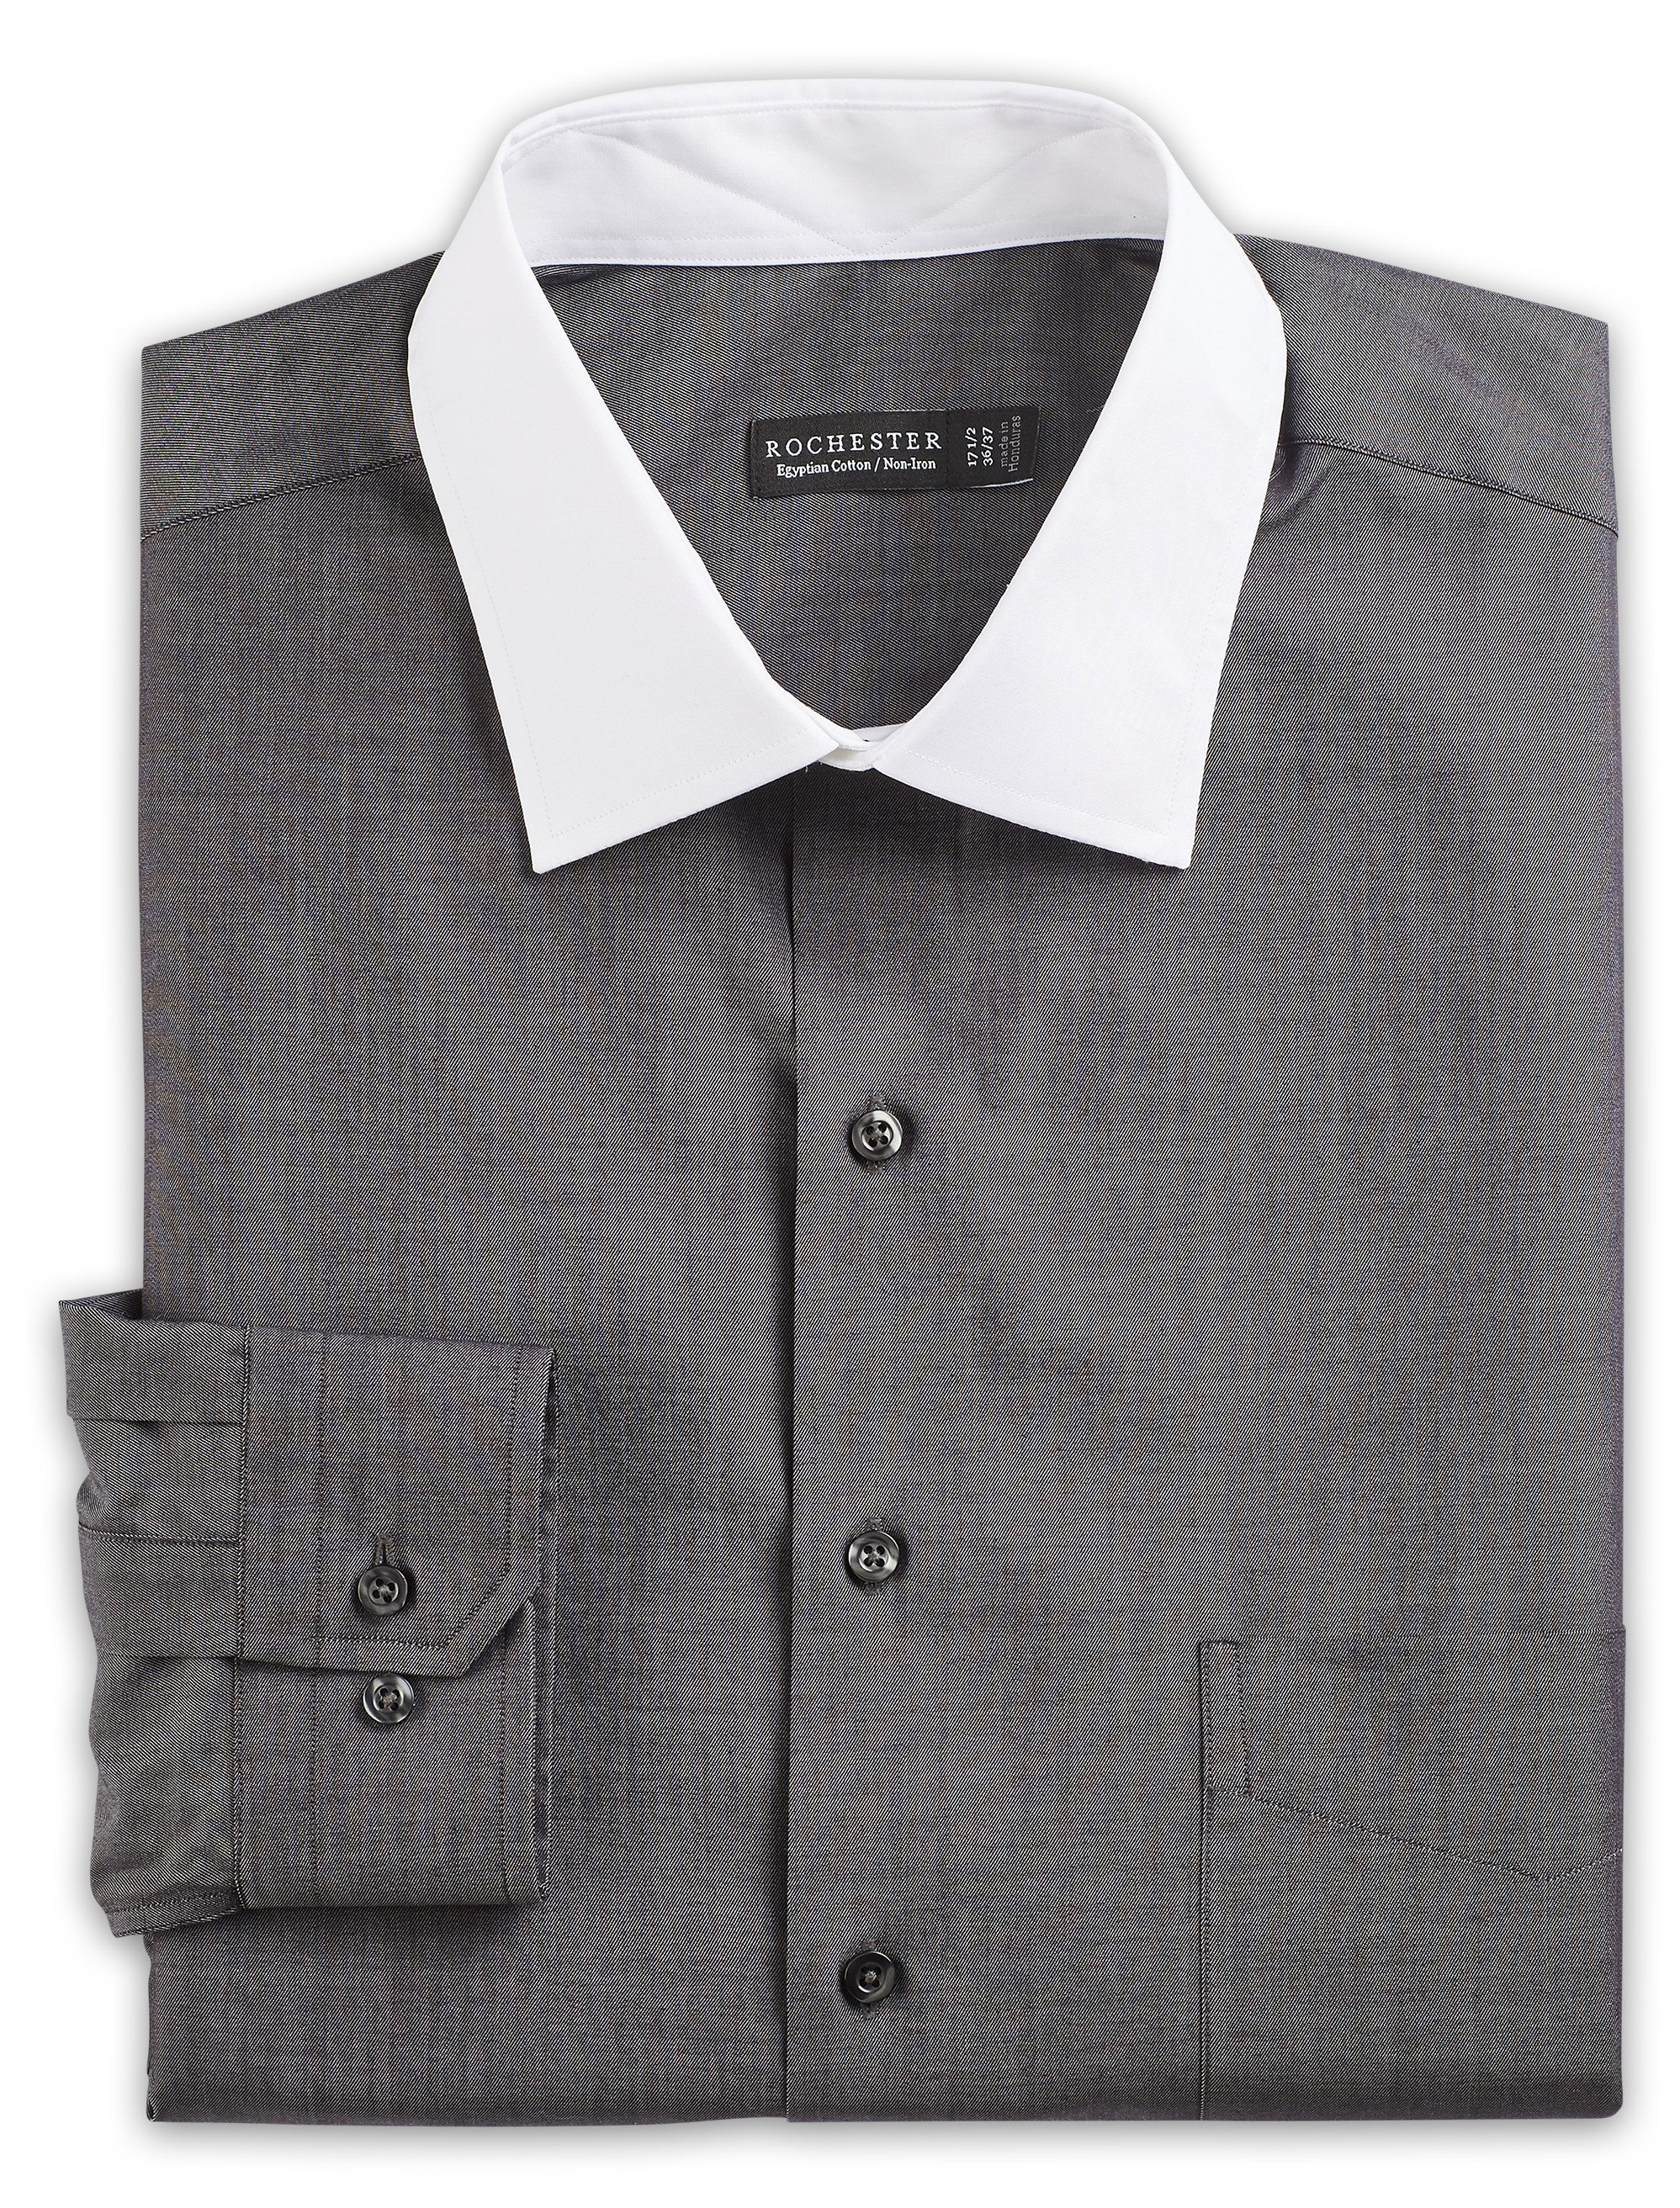 Dress shirt with white collar and cuffs